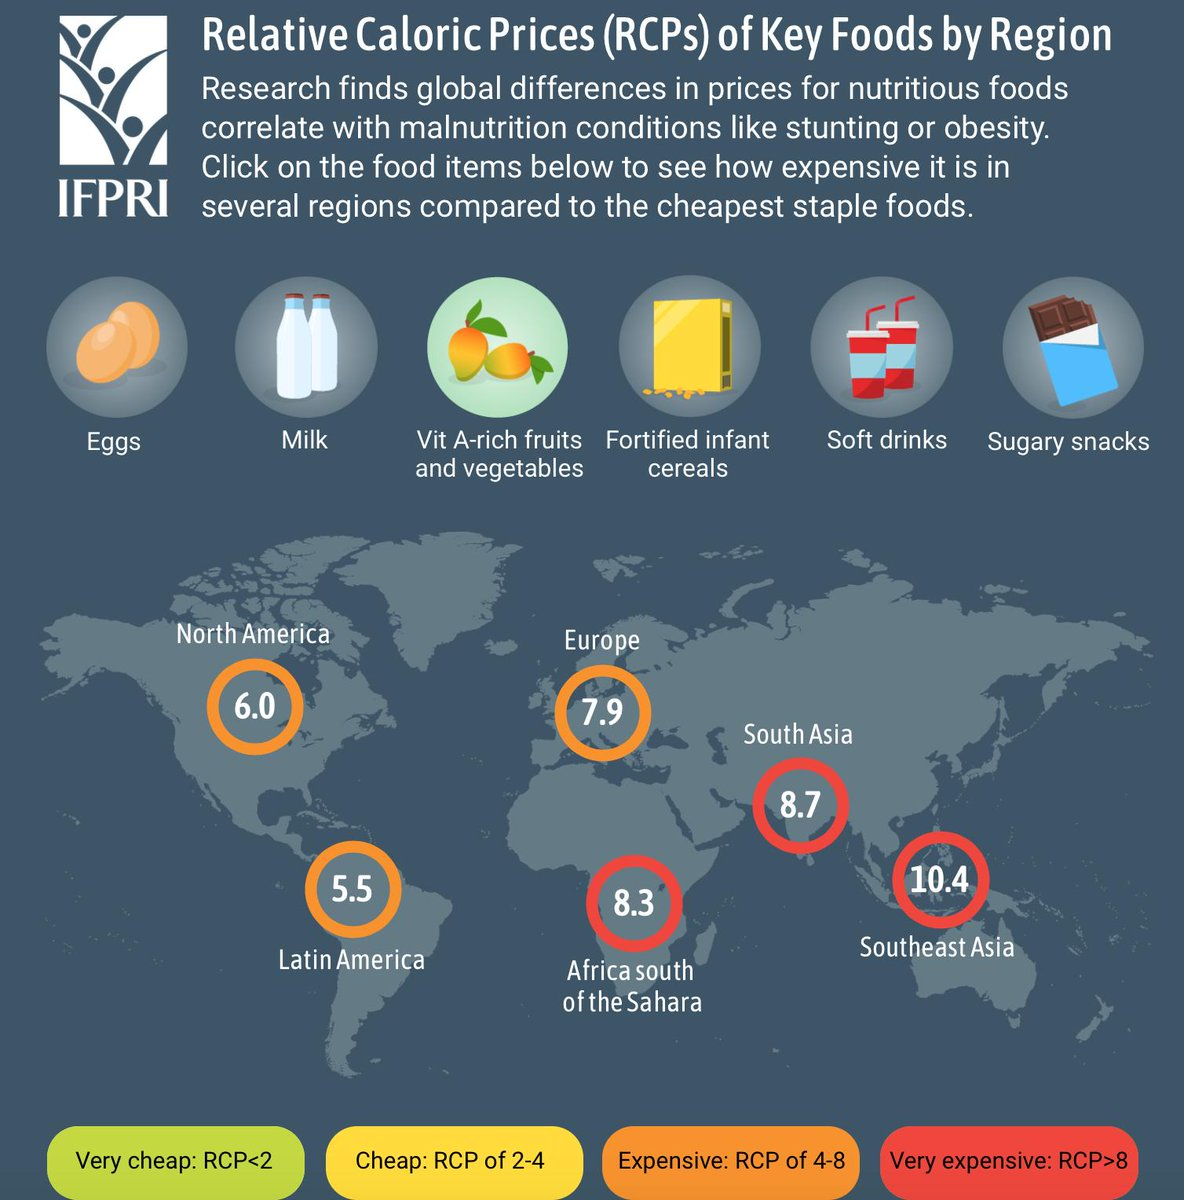 New research @IFPRI shows sugary snacks are 'very cheap' or 'cheap' in all parts of the world, while vit A-rich fruits & veg are 'expensive' or 'very expensive.' This is a global problem that needs global, national and local solutions. ifpri.org/publication/re…